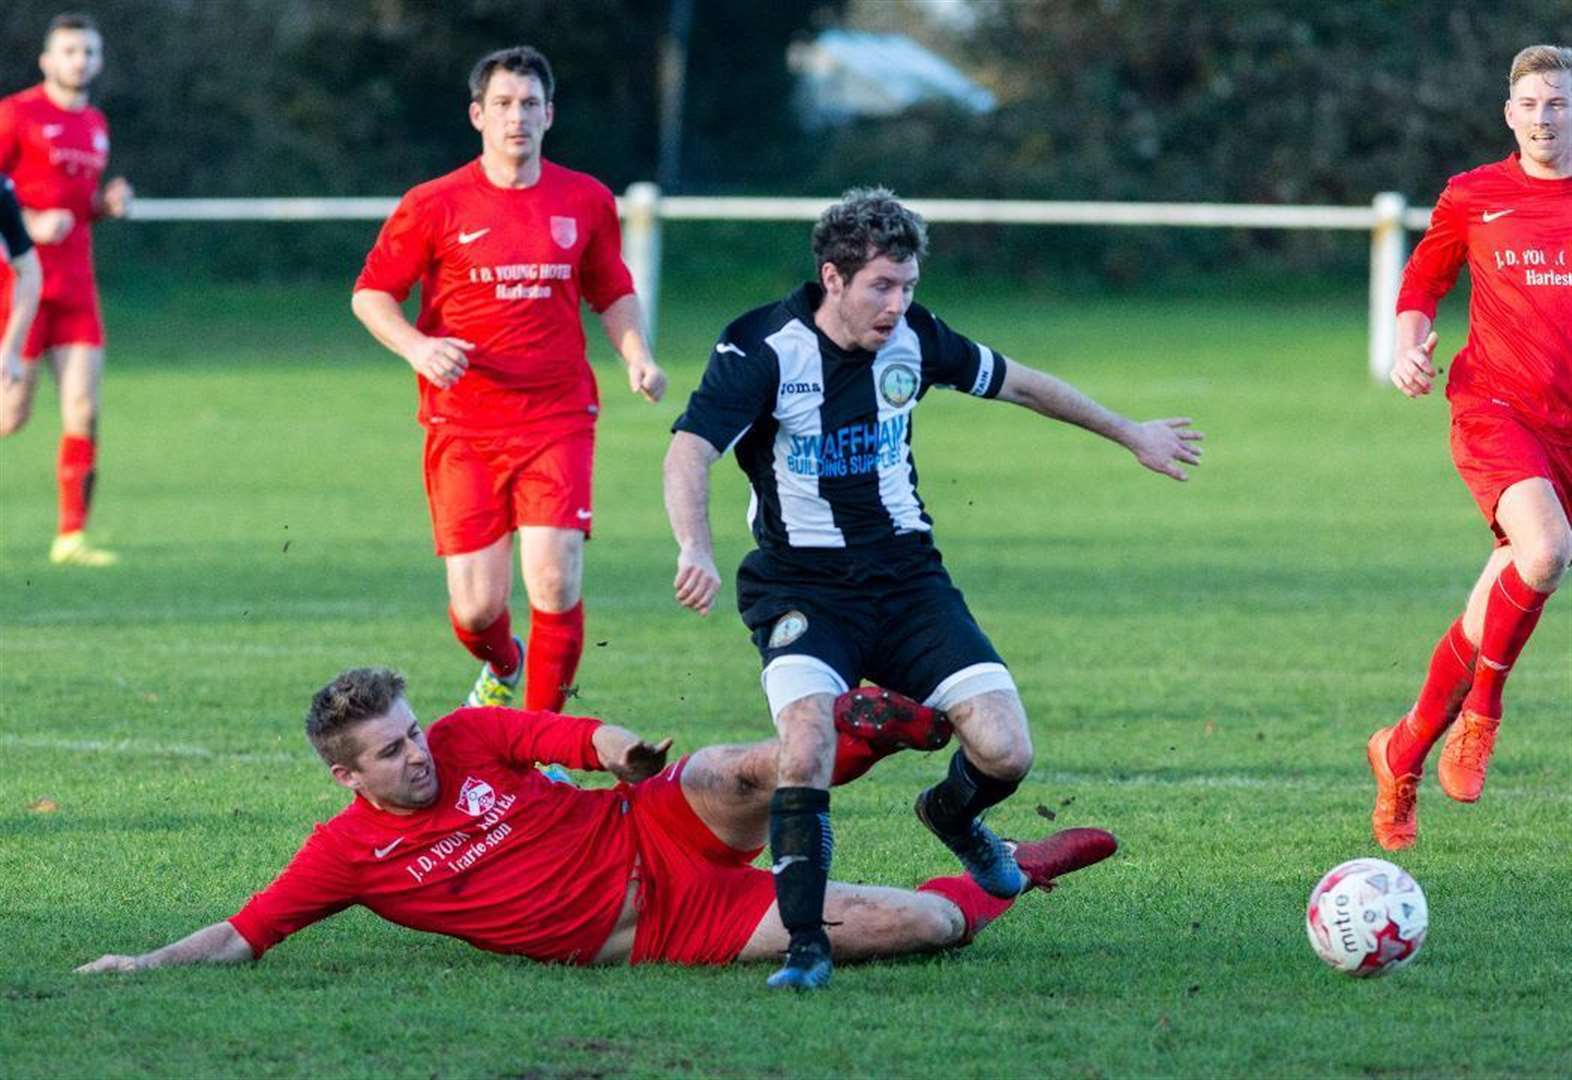 Swaffham Town boss Paul Hunt delighted after watching his side underline their Thurlow Nunn Division One North title chances